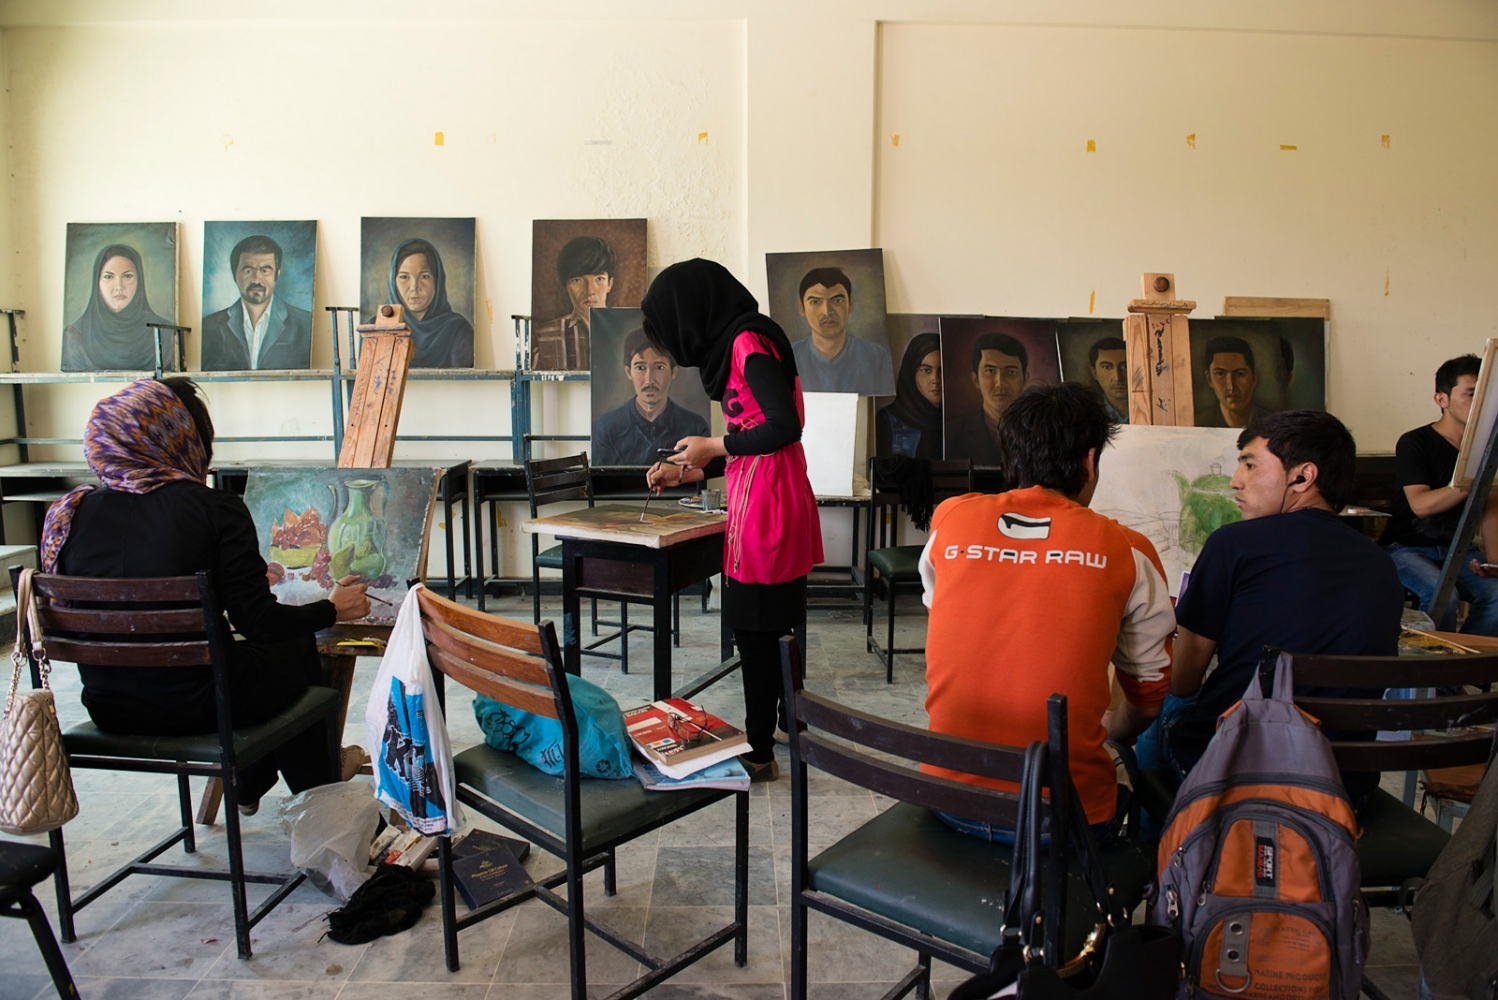 KABUL, AFGHANISTAN | 2015-06-13 | A group of students work on their projects inside a painting class at Kabul University Faculty of Fine Arts.